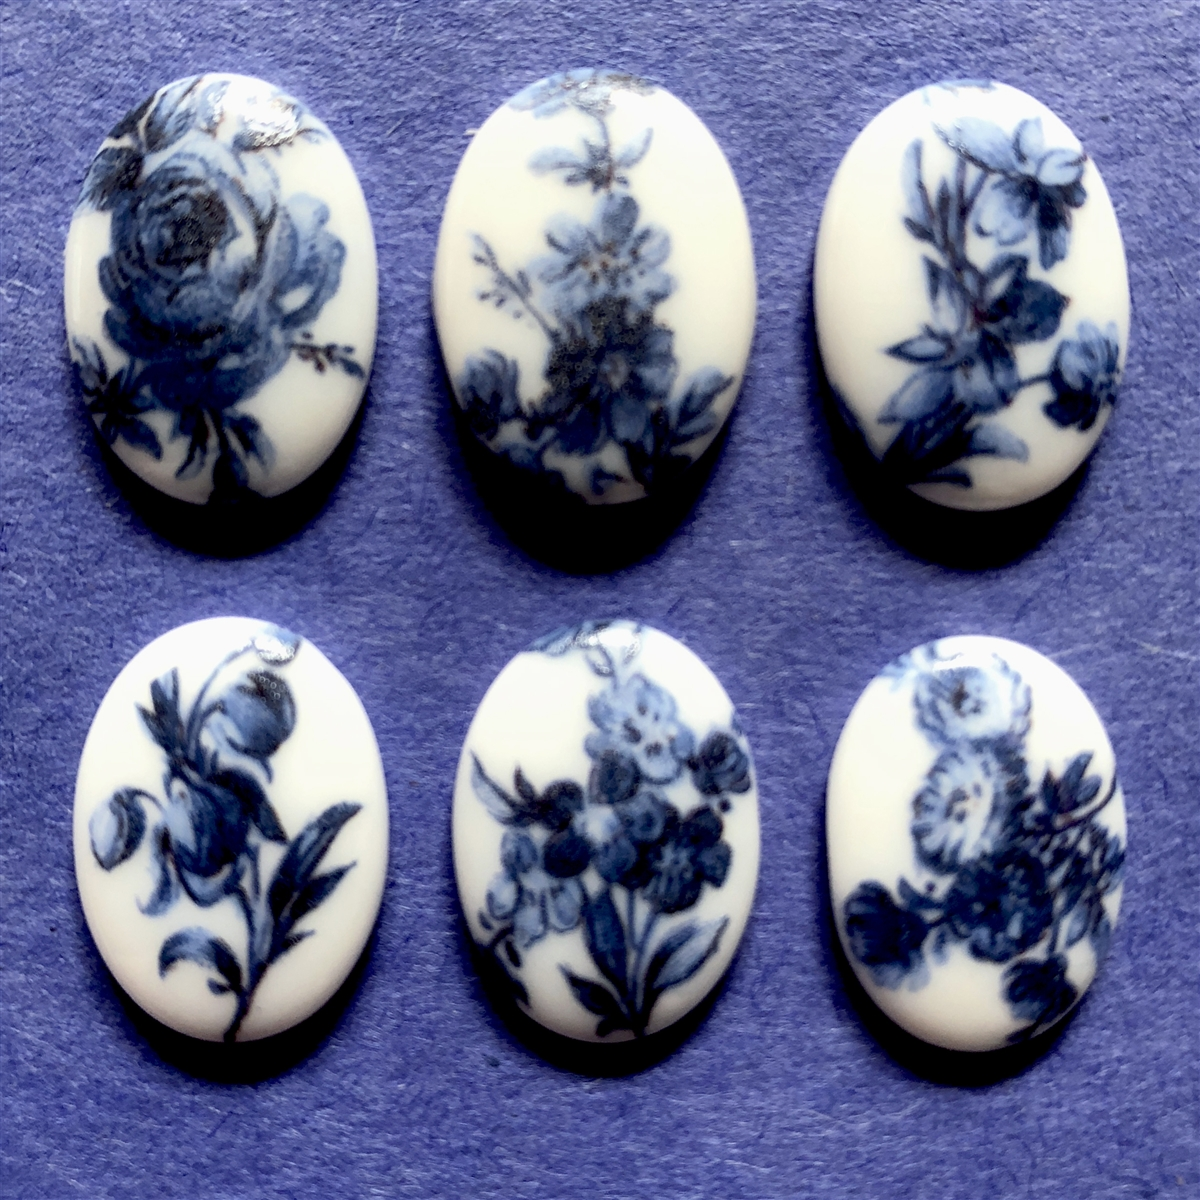 Porcelain Cameos Blue And White 07256 Floral Cameos Cameo Blue